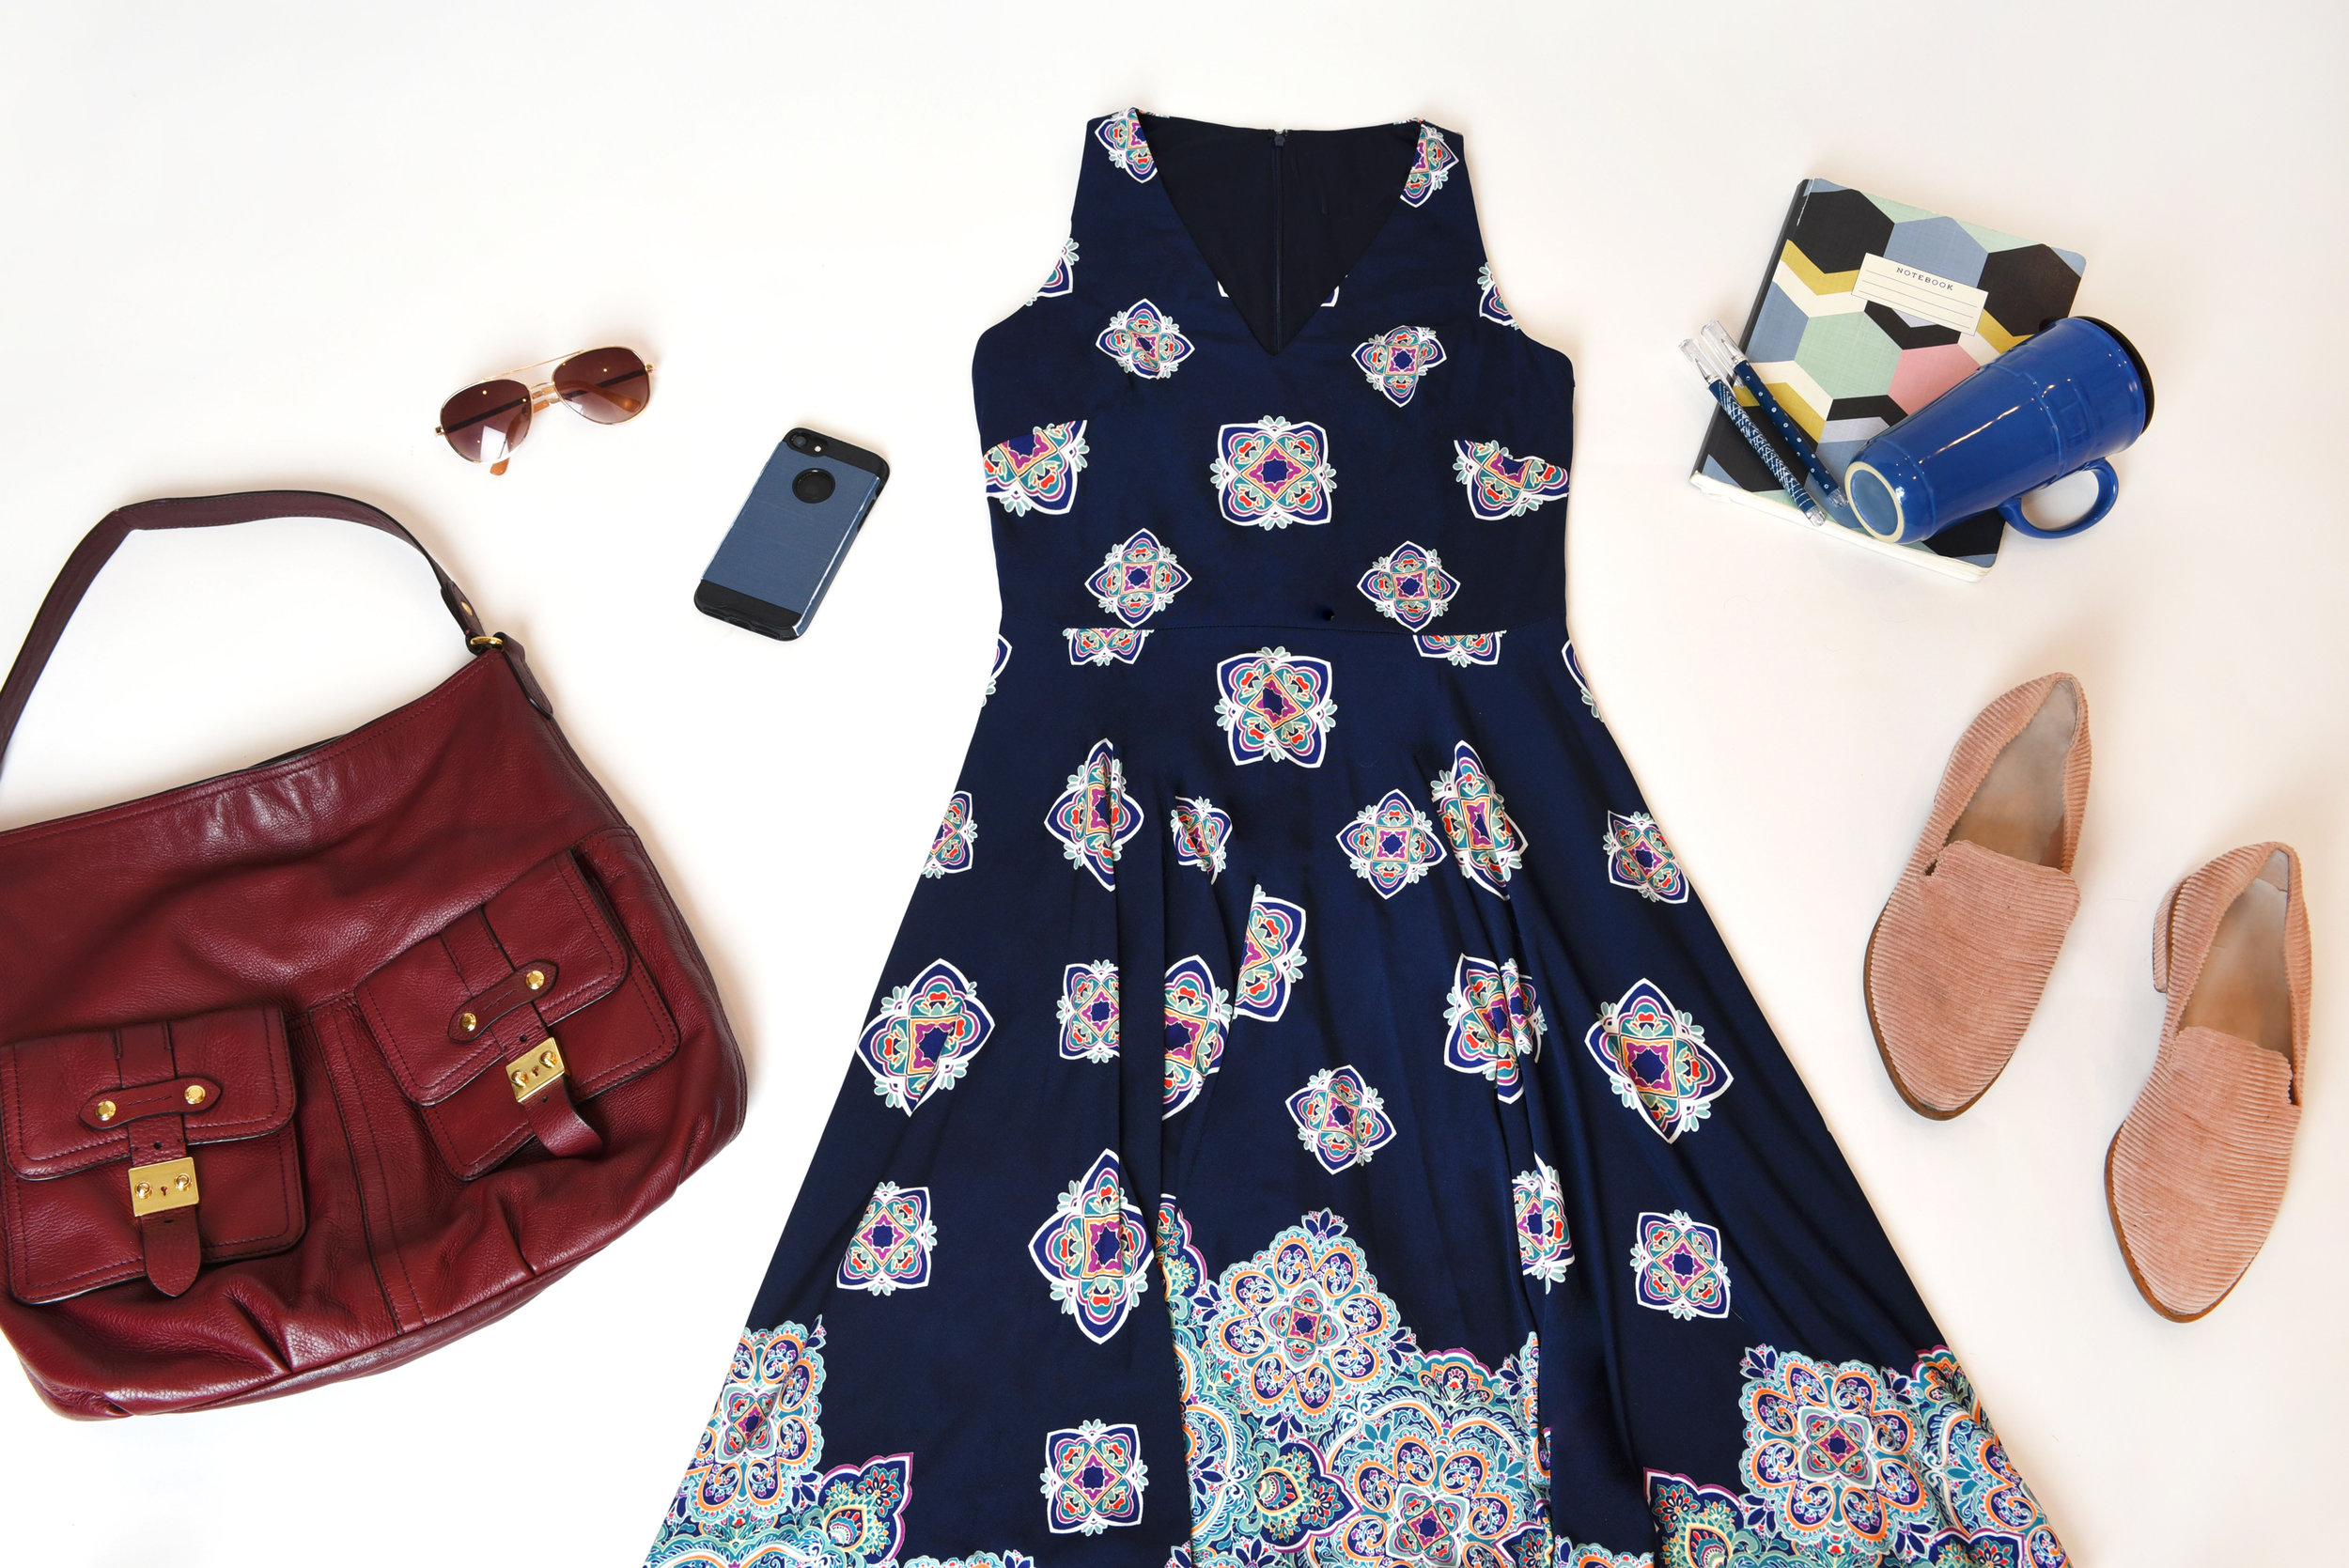 Sometimes, Summer Fridays can be trickiest days to style (Weren't they supposed to be the easiest?!). Concerned about misreading the line between  too casual  and  too stuffy ? With the perfect balance of office-appropriate and comfy-casual, our  Callie dress  will have you twirling work stress away before the weekend even starts.